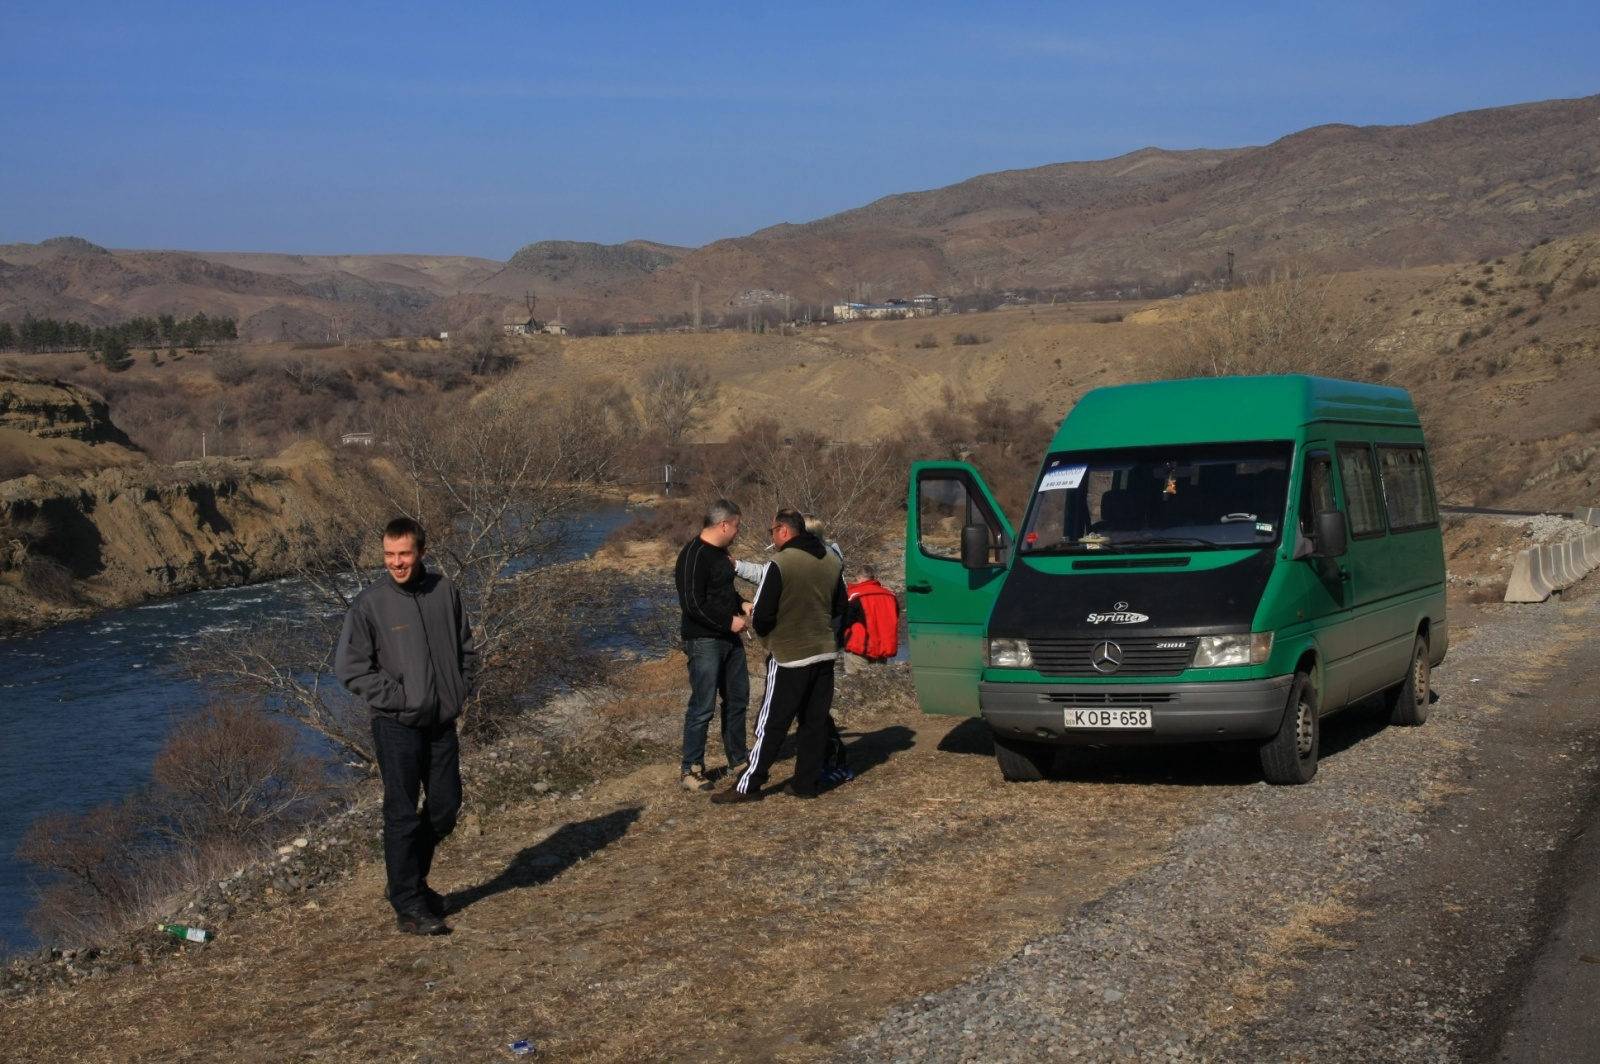 Piss and wine stop on the way to Varzdia, towards the Turkish border